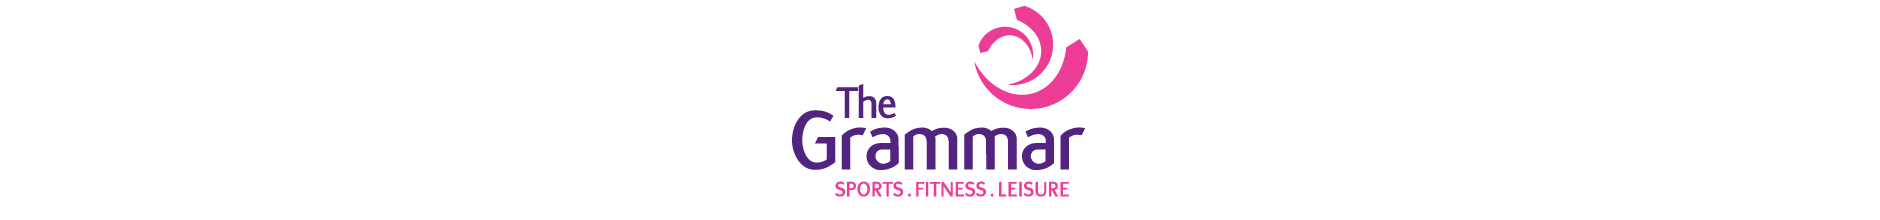 The Grammar Retina Logo